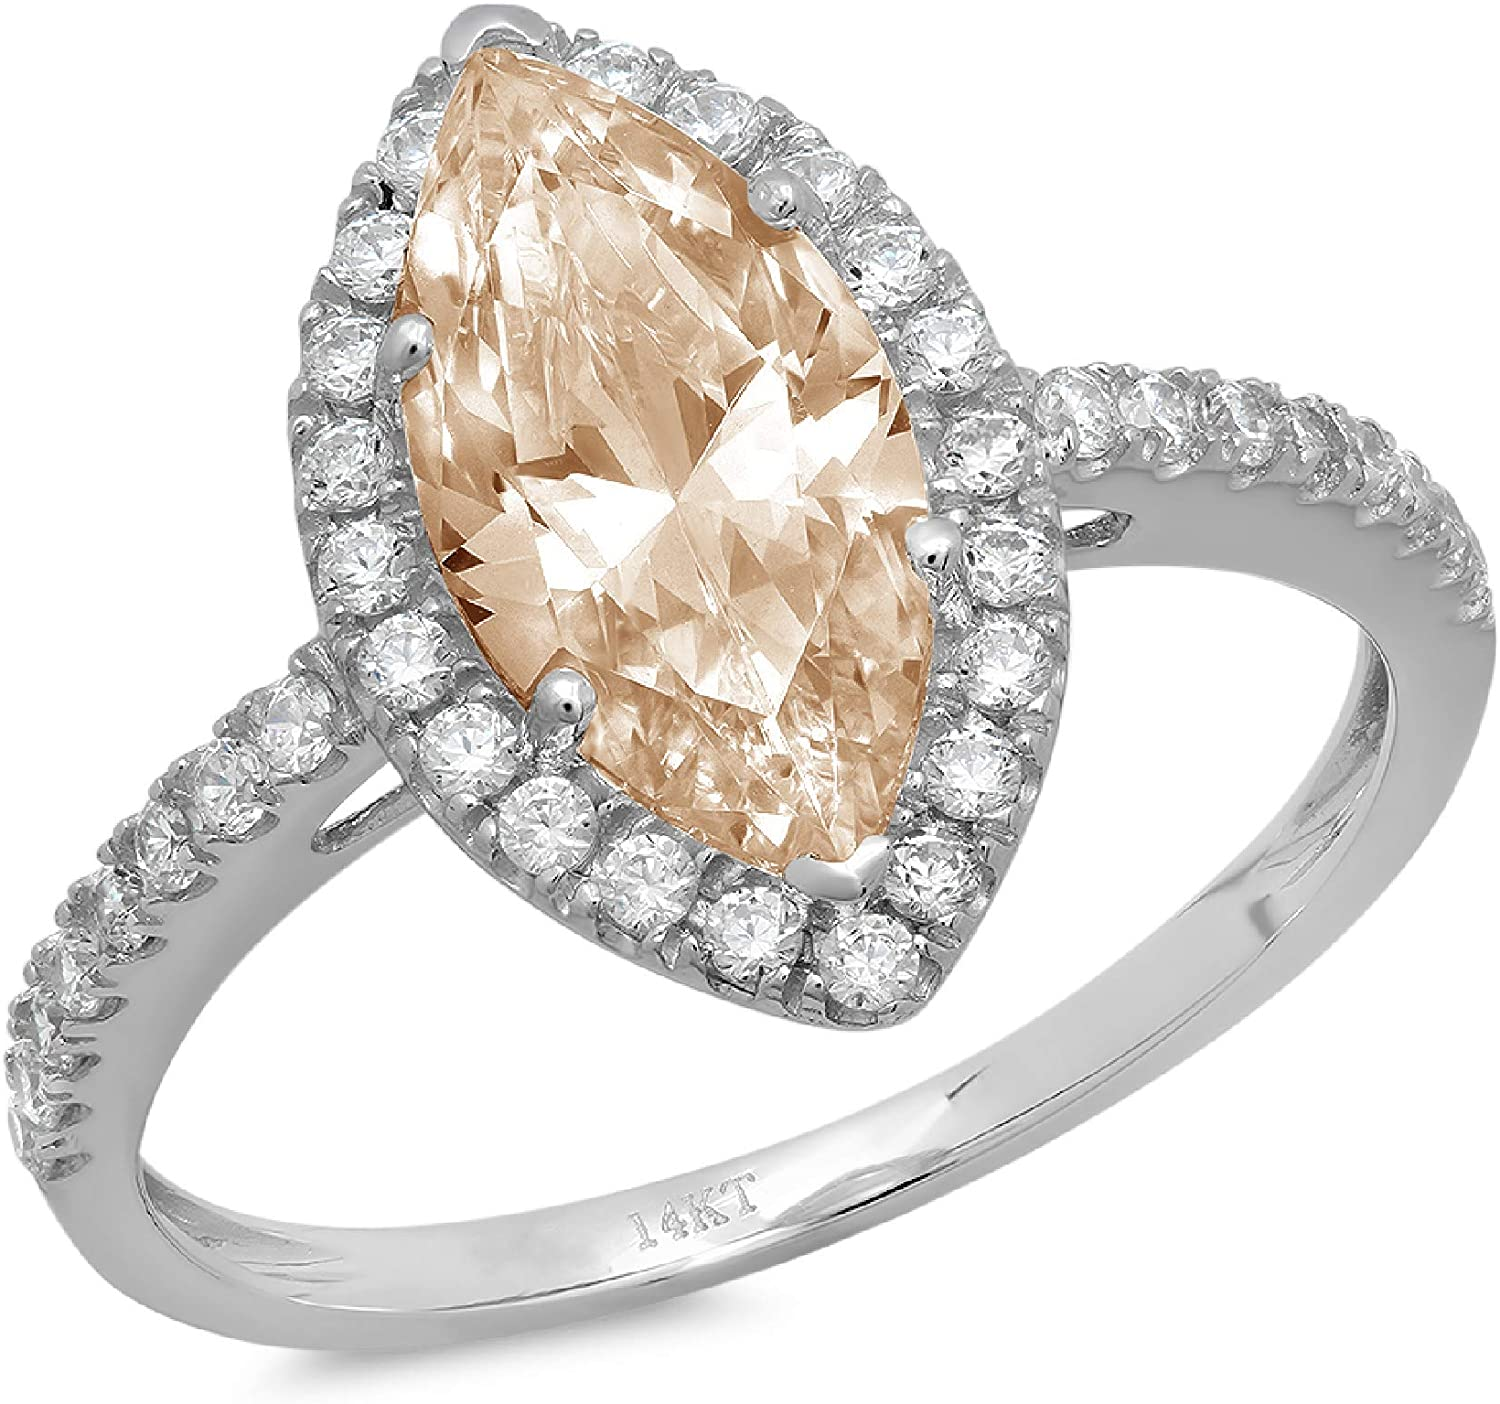 2.38ct Brilliant Marquise Cut Solitaire with Accent Halo Brown Champagne Simulated Diamond Ideal VVS1 Engagement Promise Anniversary Bridal Wedding Ring 14k White Gold